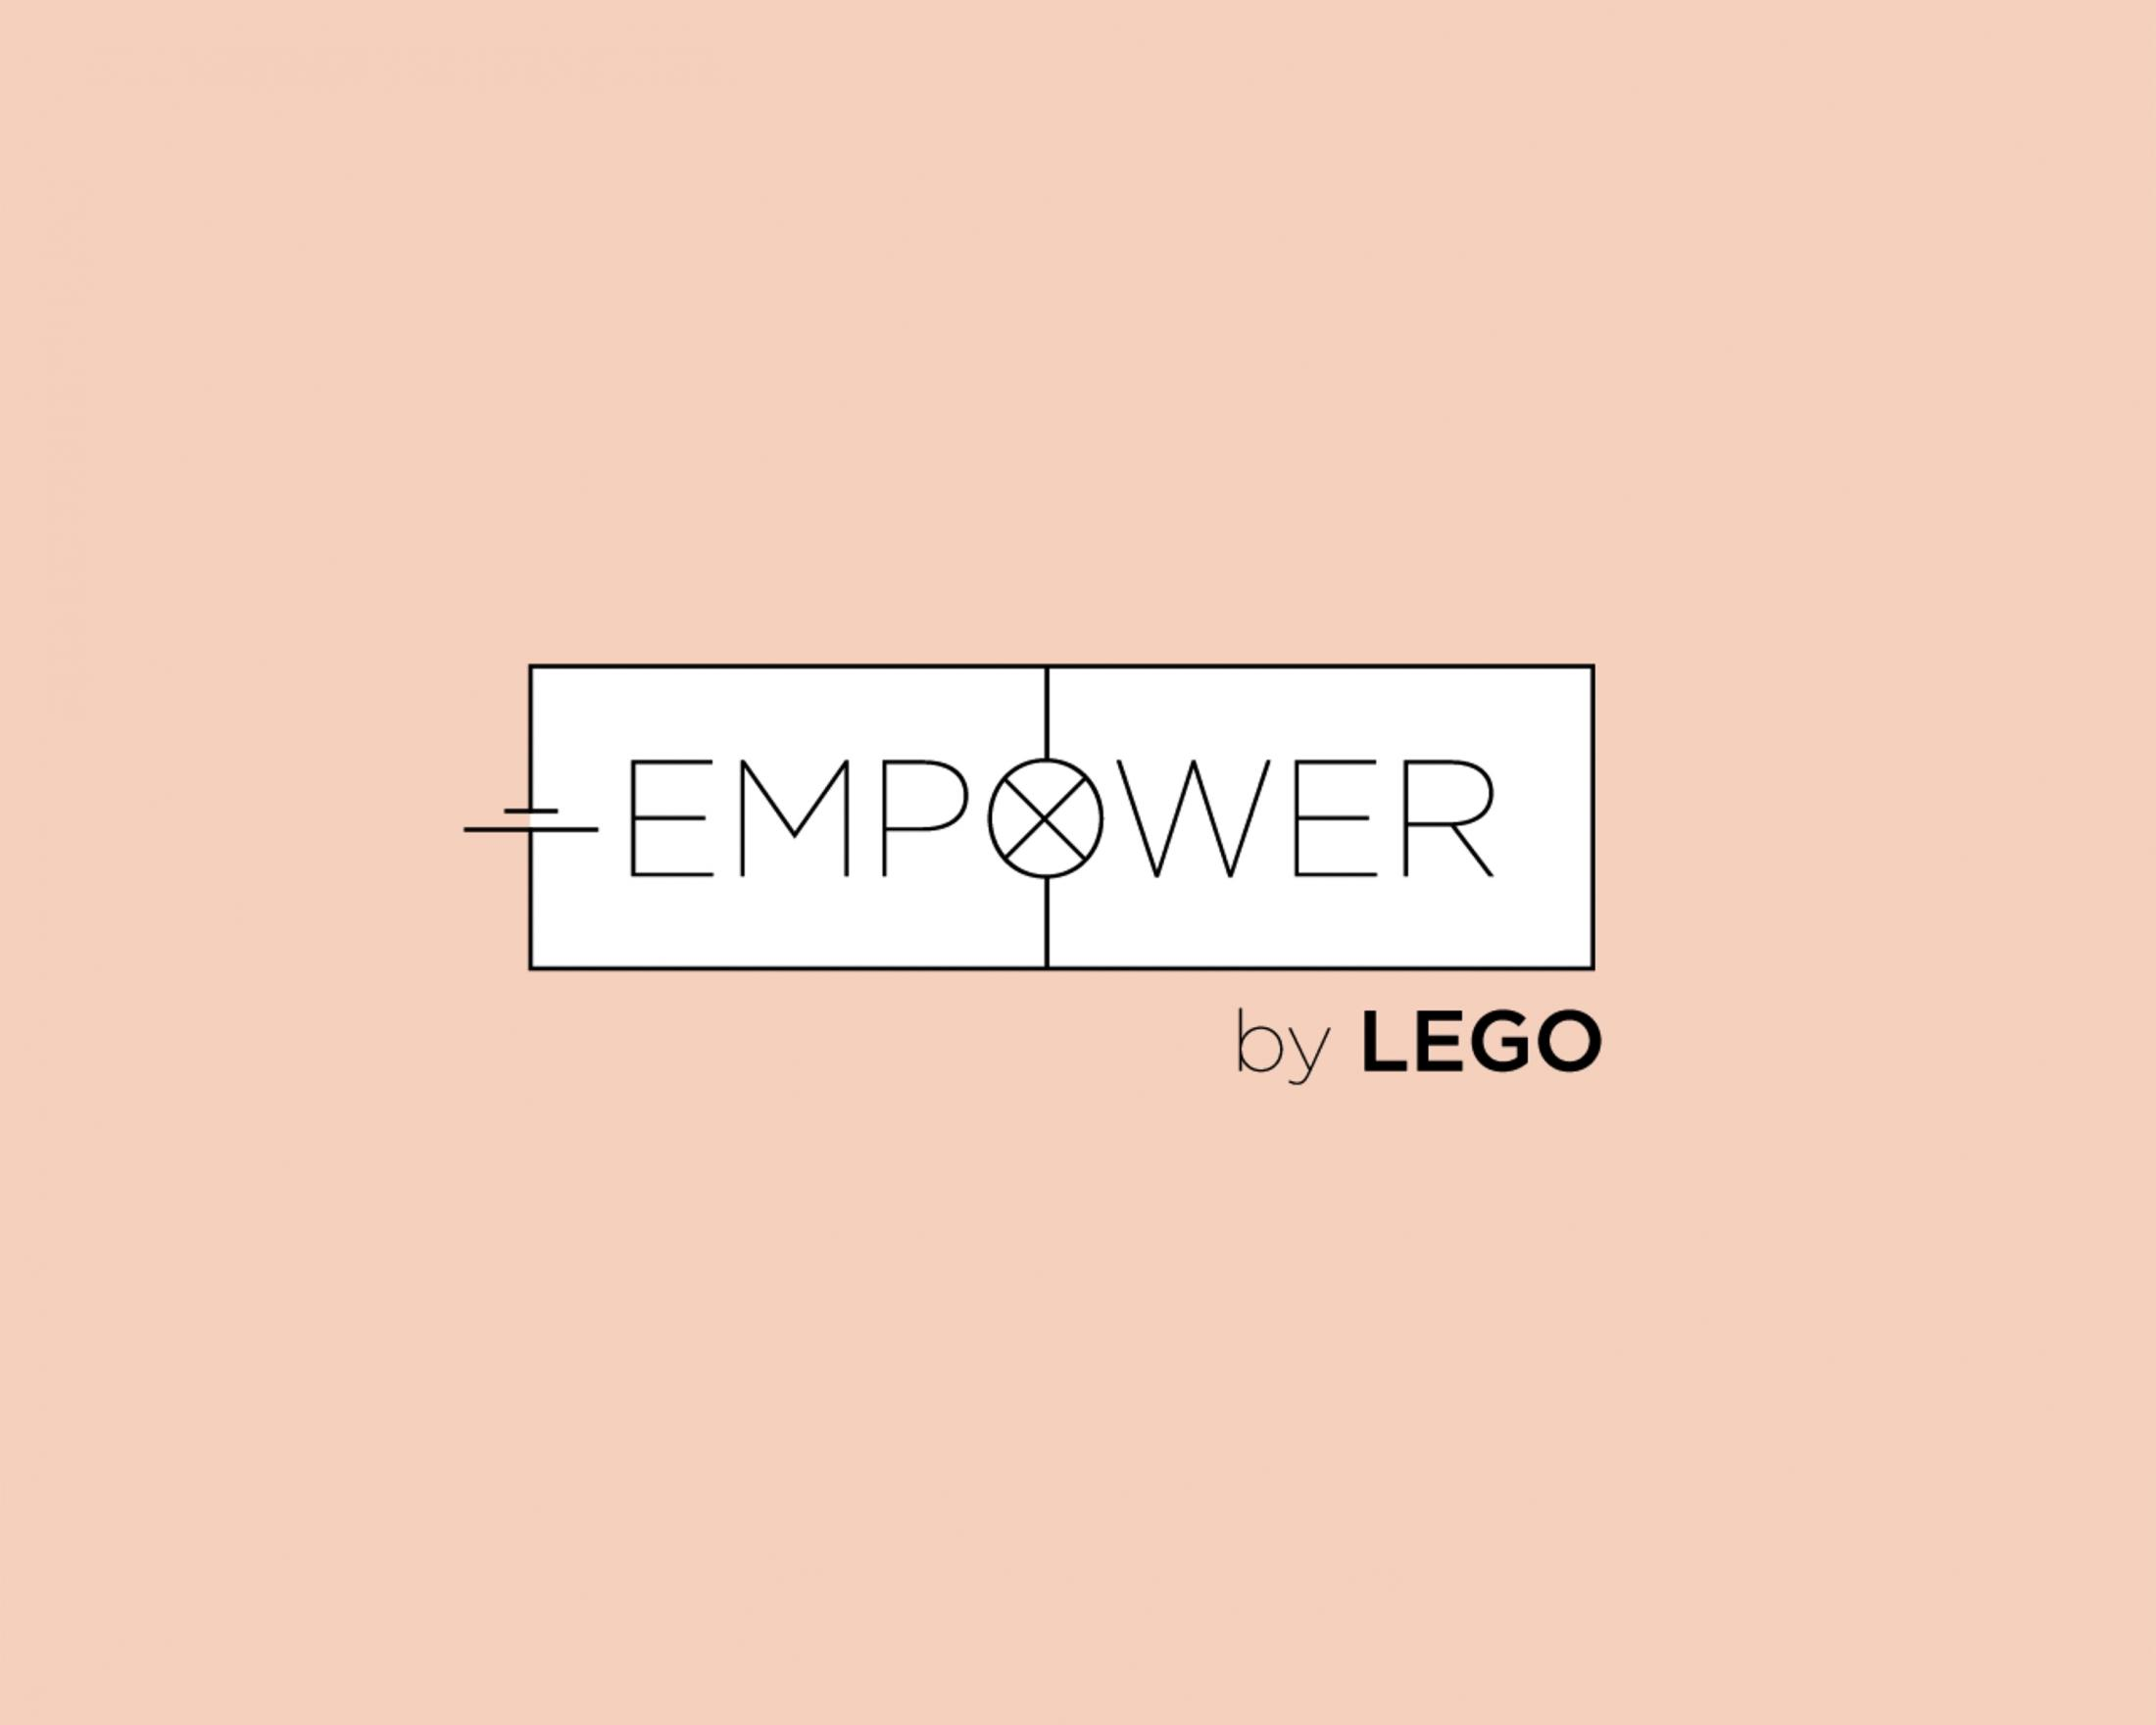 Thumbnail for Empower by Lego